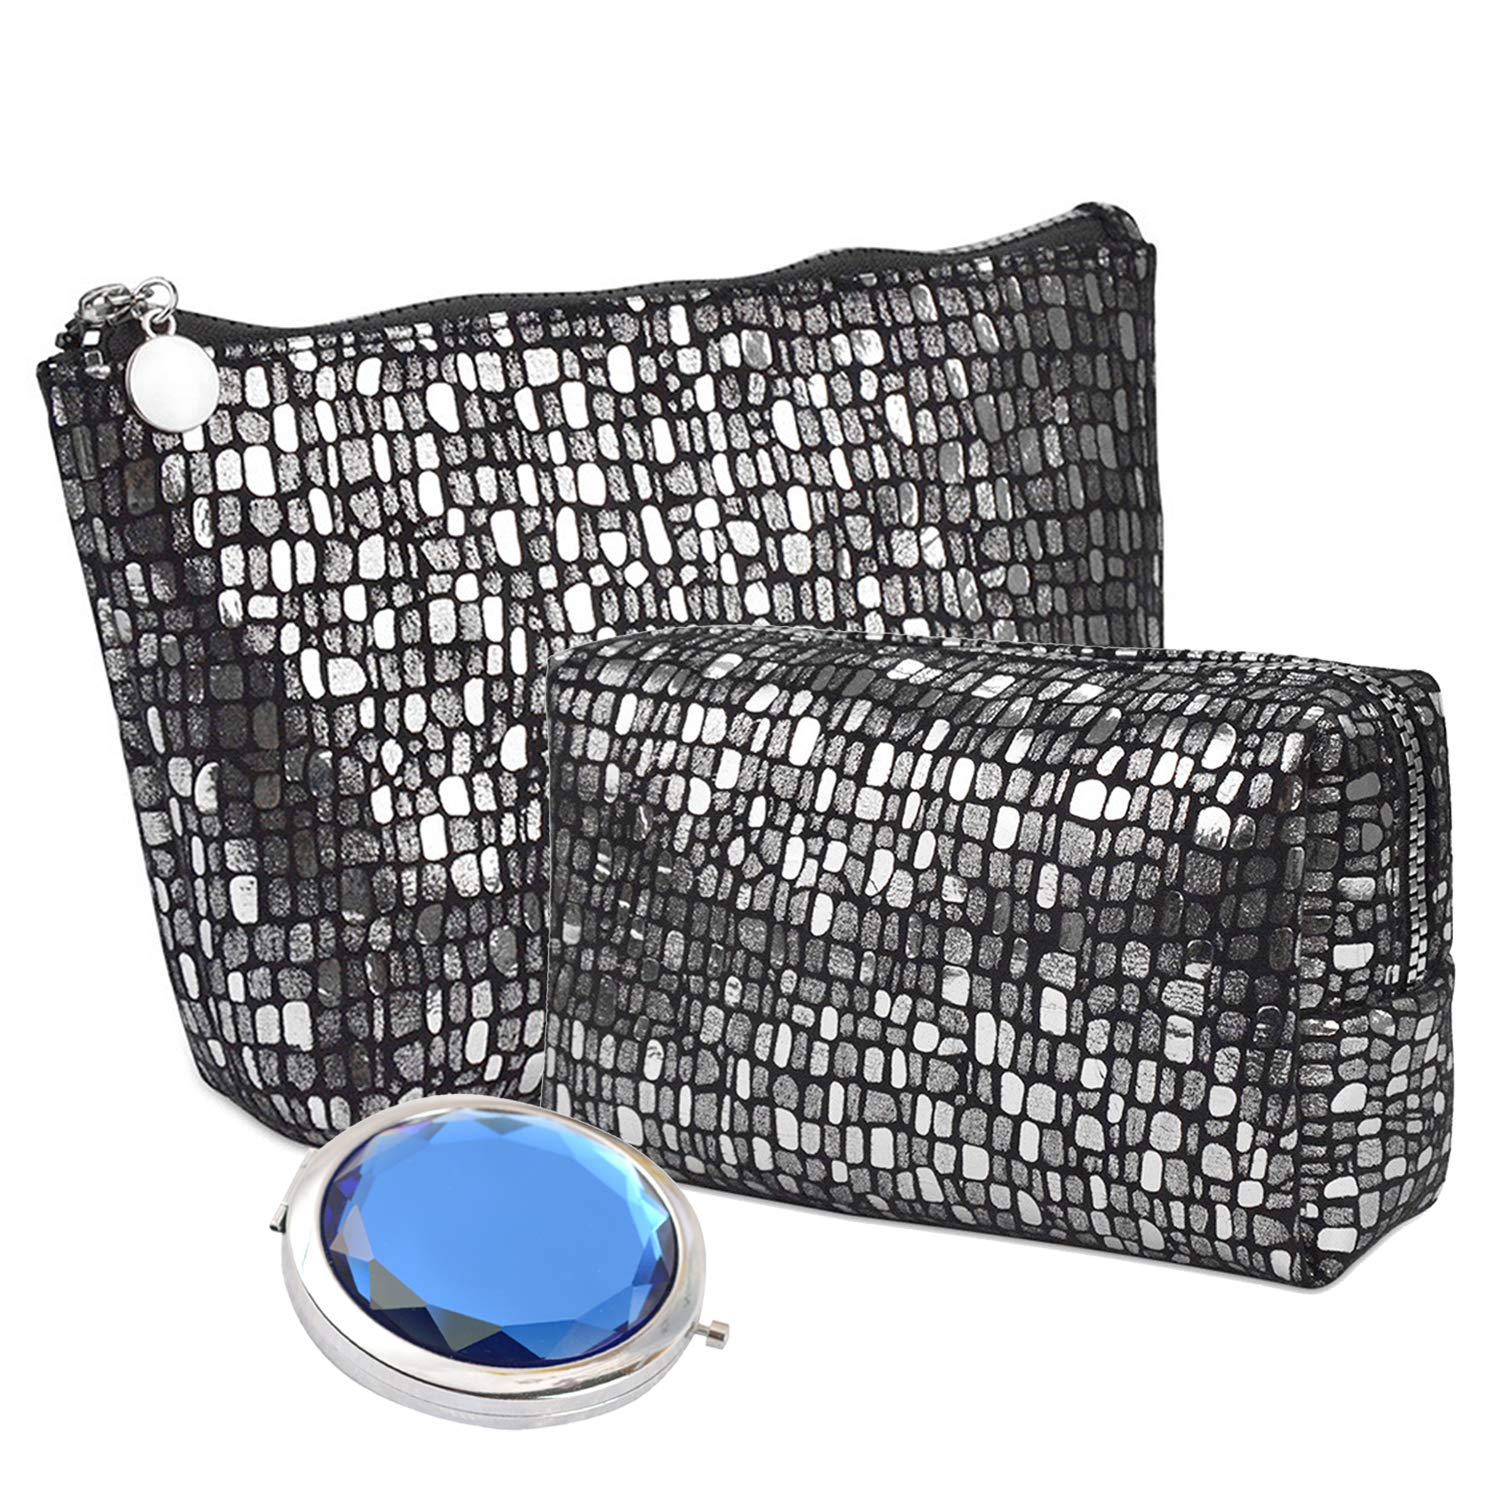 2 Pcs Sequin Printing Cosmetic Bags with Portable Mirror for Women Girls Glitter Makeup Pouch Set Shiny Evening Clutch Purse with Silver Zipper (Black)